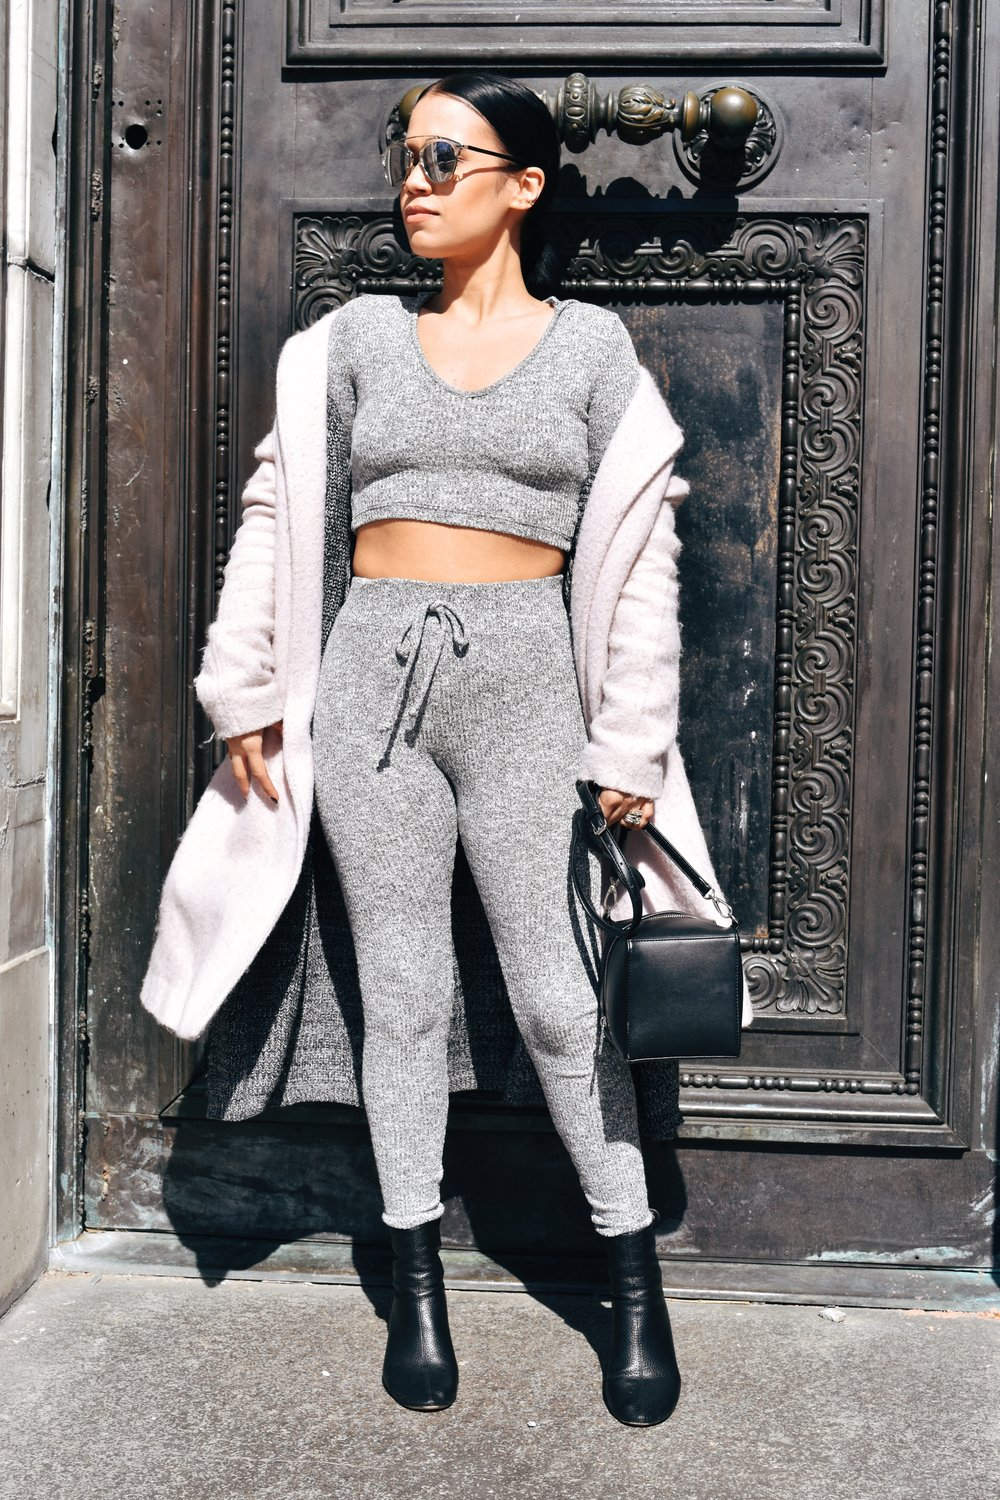 Fashion Nova grey set | ASOS booties | Dior sunnies | Overcoat from Urban Outfitters